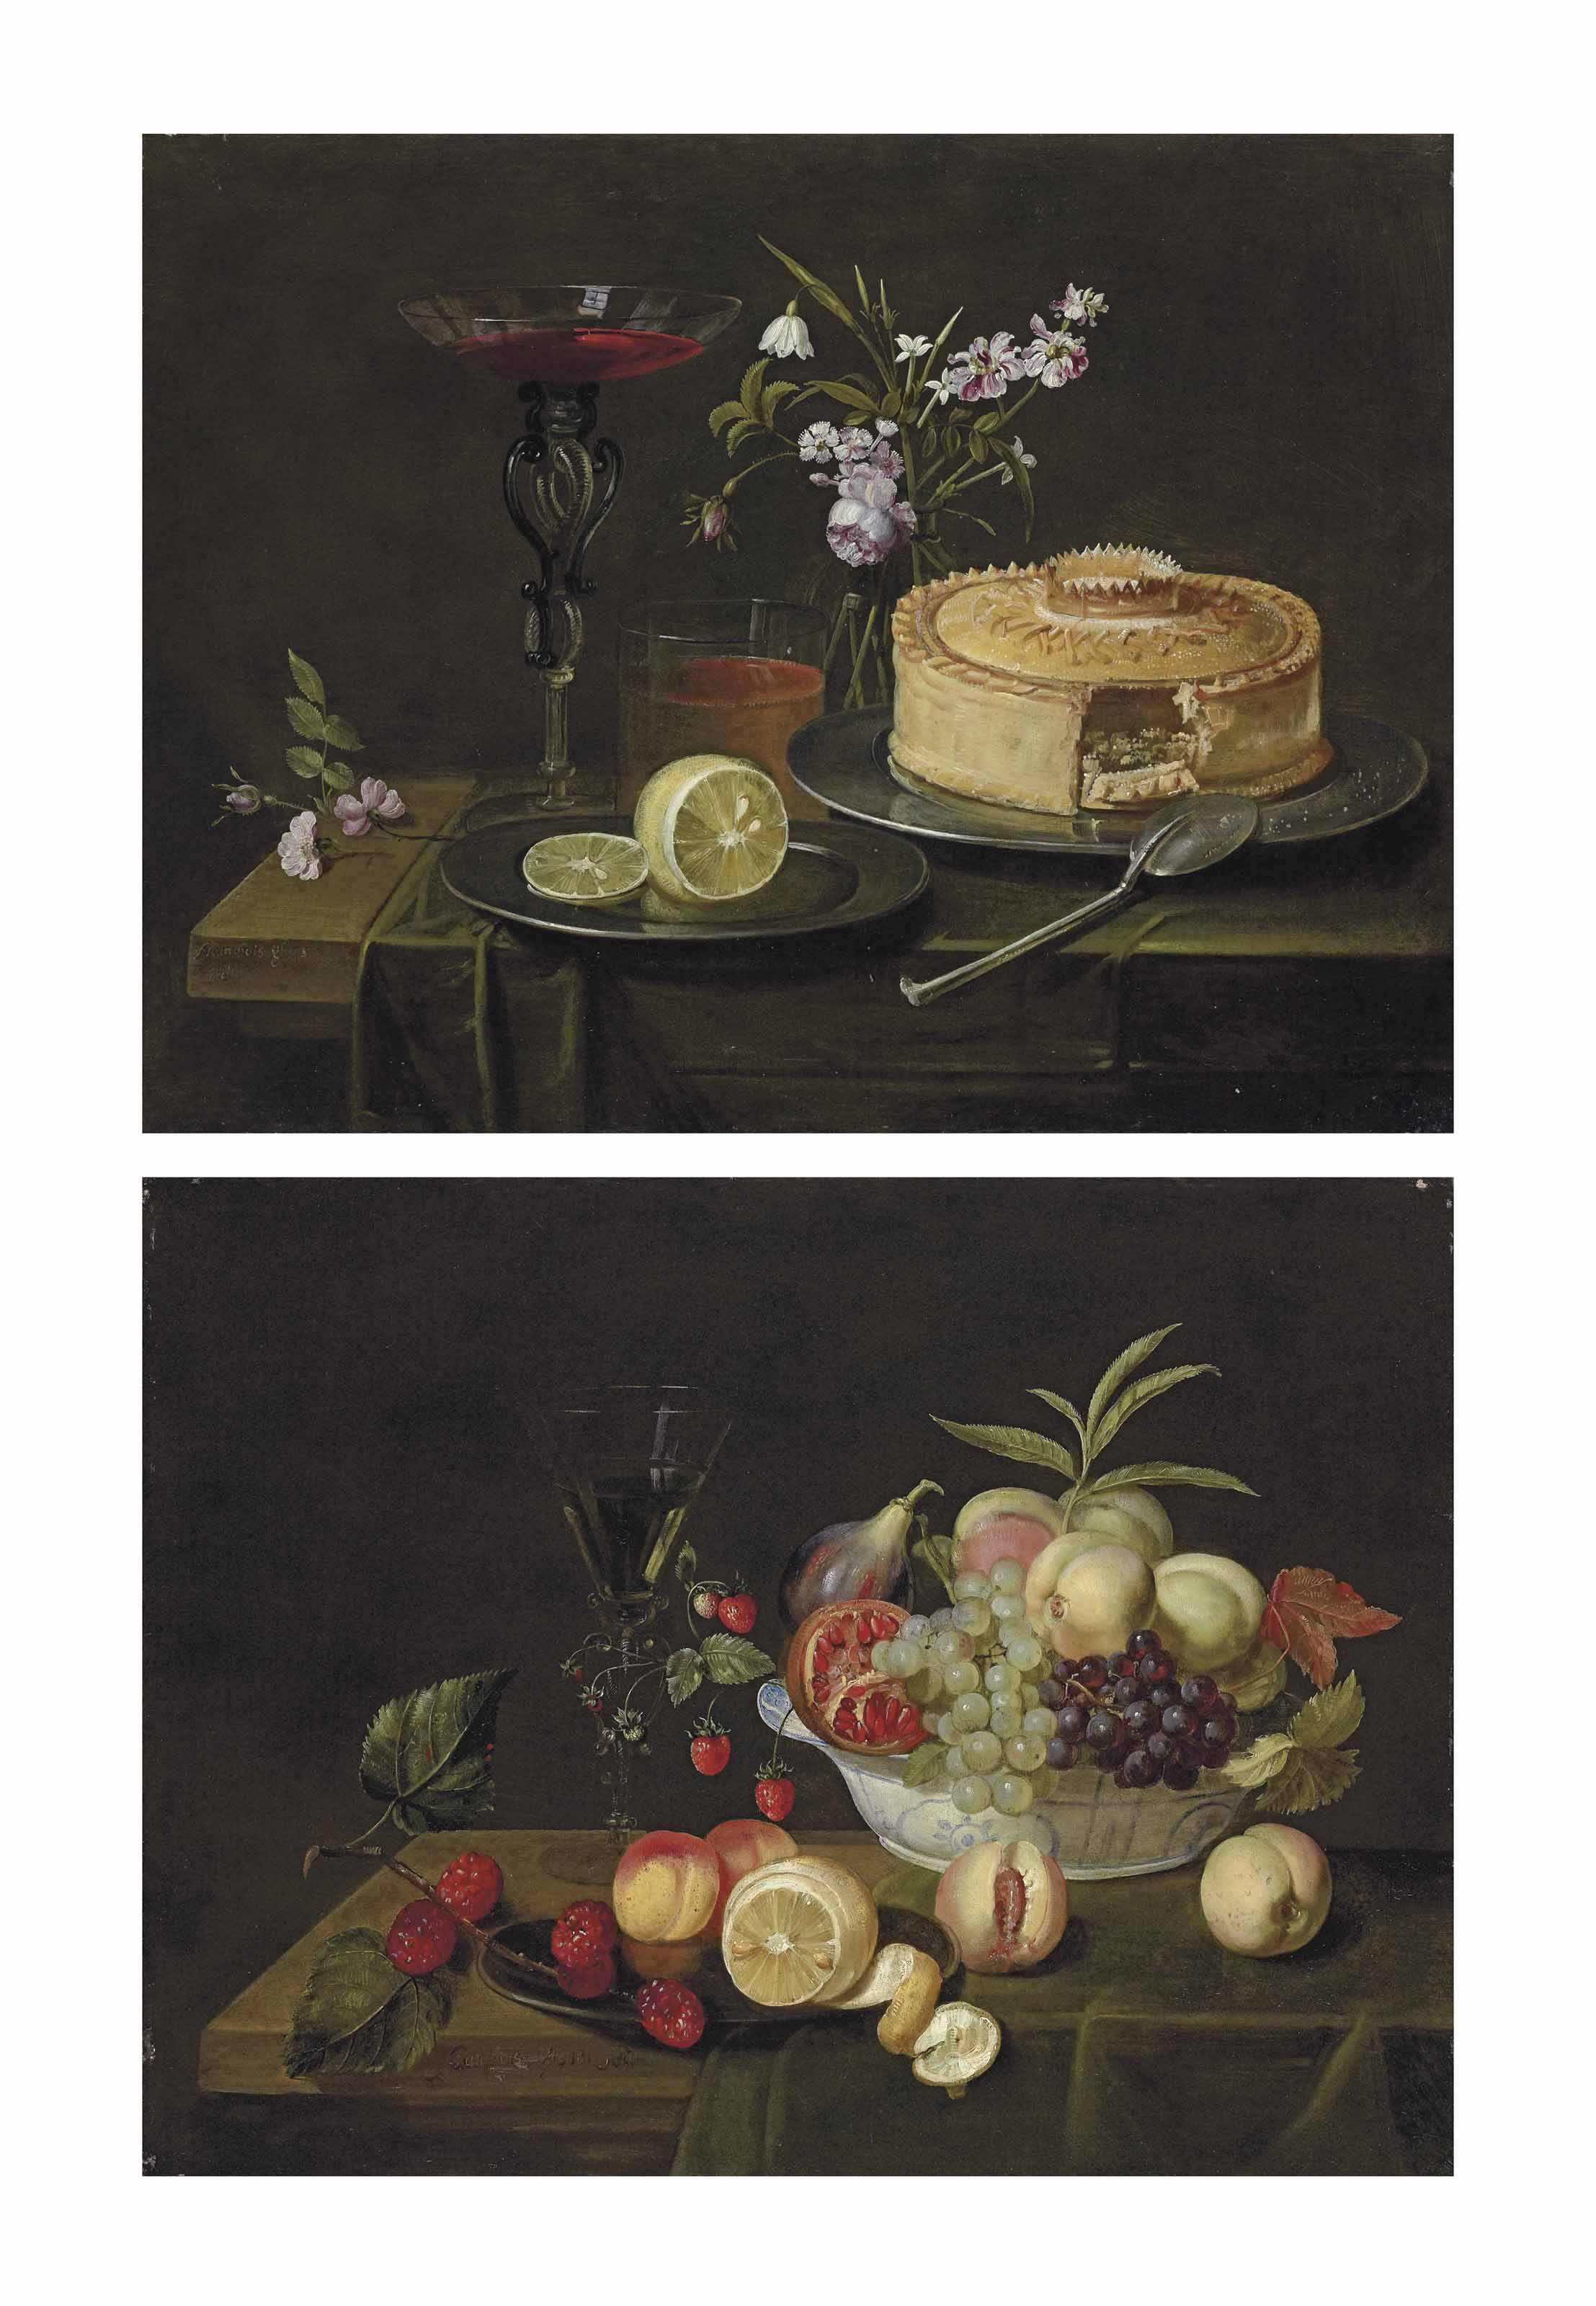 Grapes, peaches, a fig and a passion fruit in a Wan-Li porcelain bowl, a half-peeled lemon on a pewter platter, and a façon-de-Venise wine glass, on a partly-draped wooden table; and A pie and a cut lemon on pewter platters, a façon-de-Venise wine glass and flowers in a glass vase, on a partly-draped table